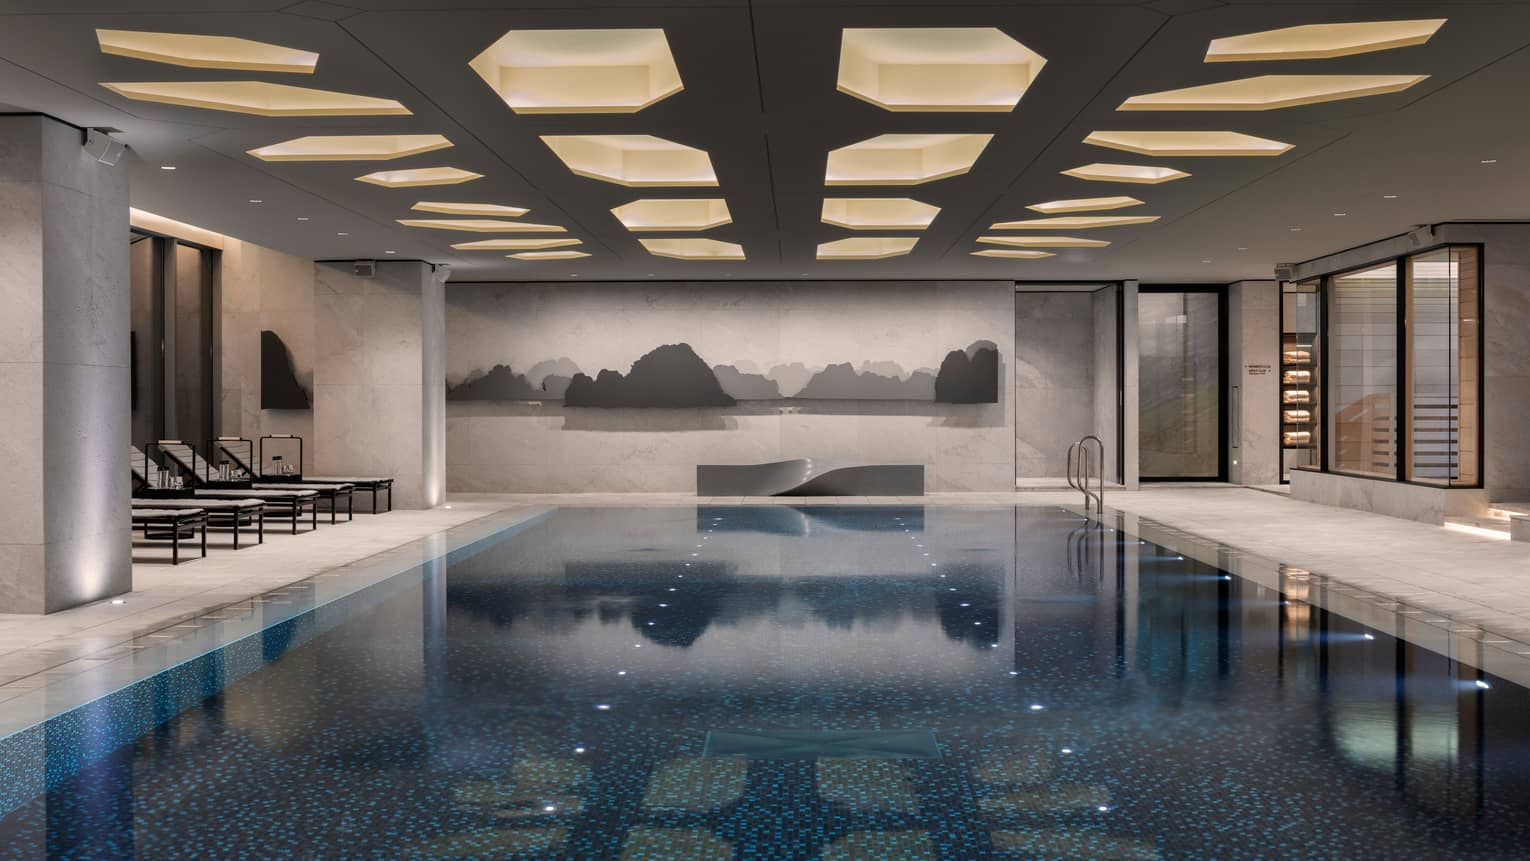 Indoor swimming pool under ceiling with recessed lights